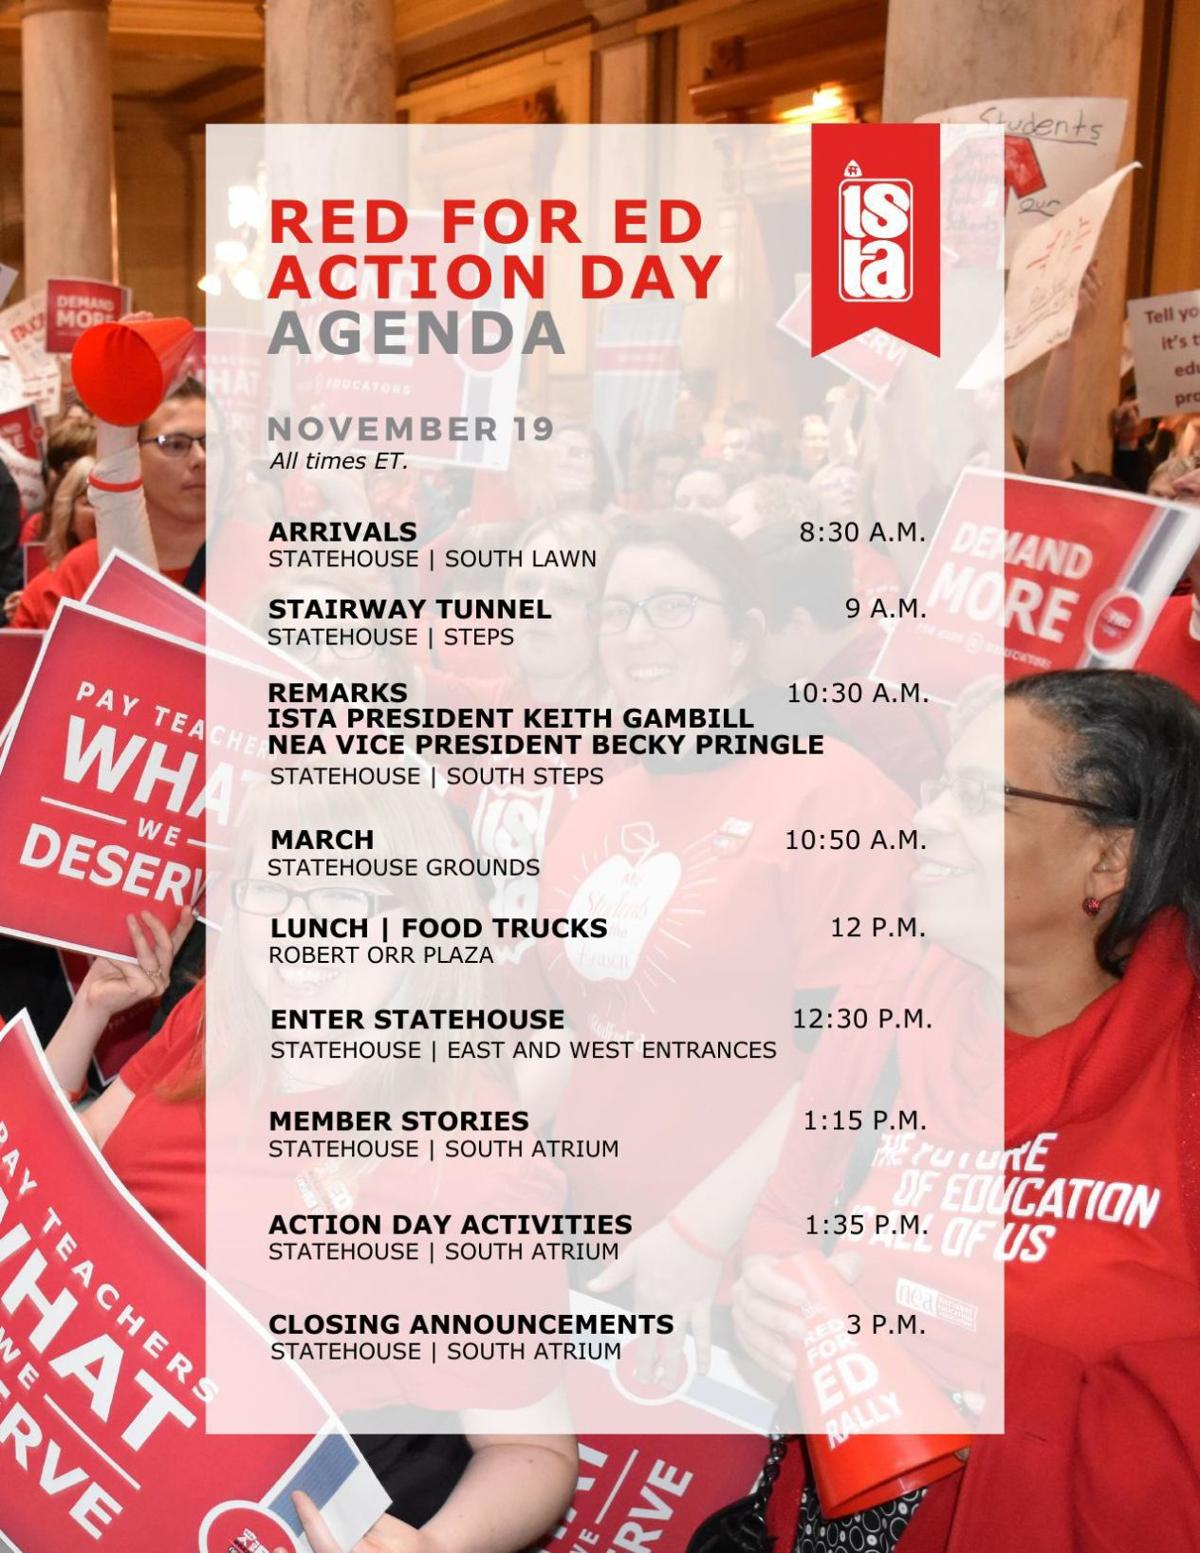 ISTA's Red for Ed Action Day agenda